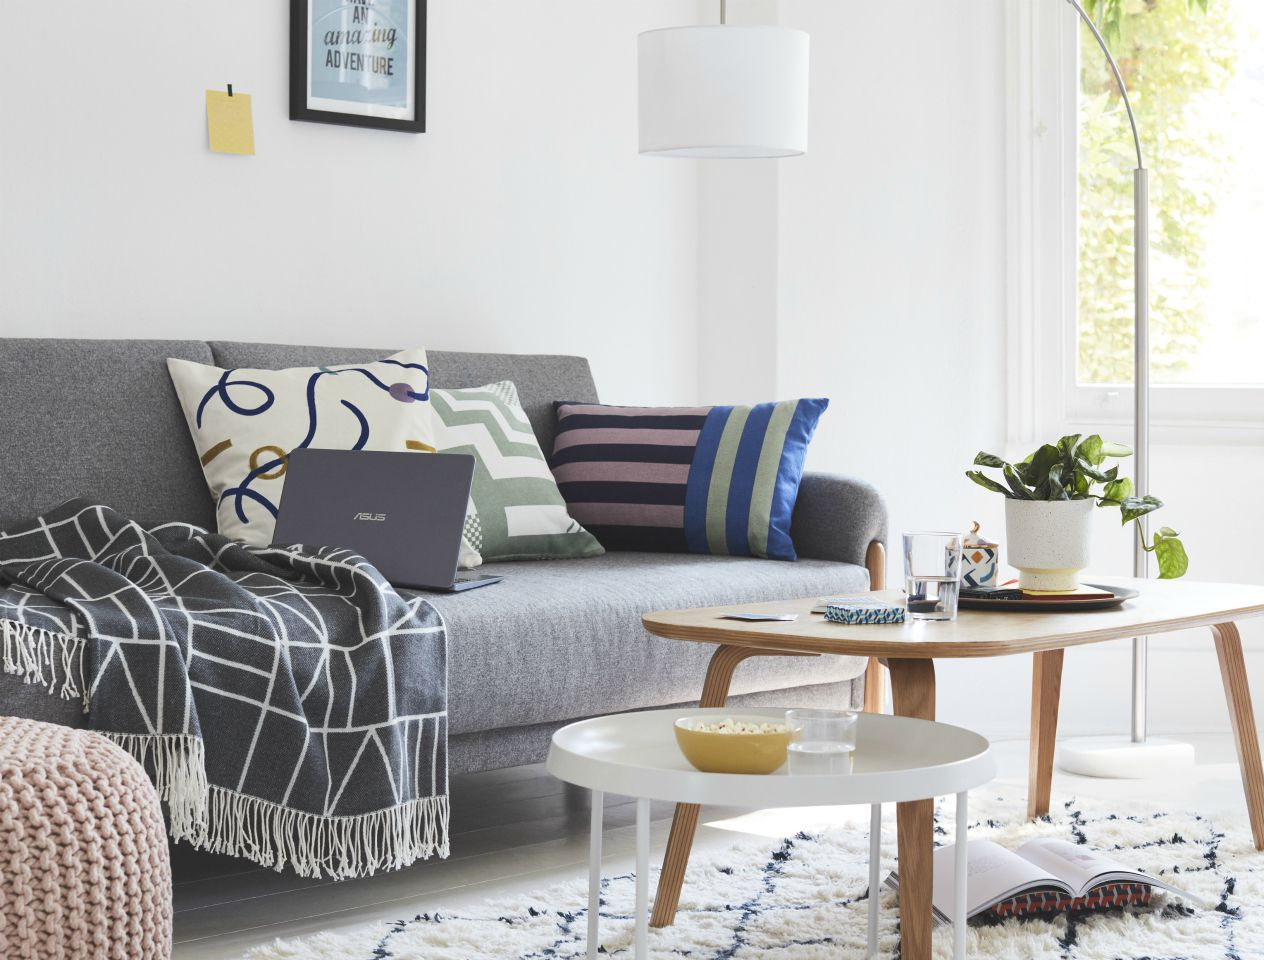 interior design for student wellbeing, student living room